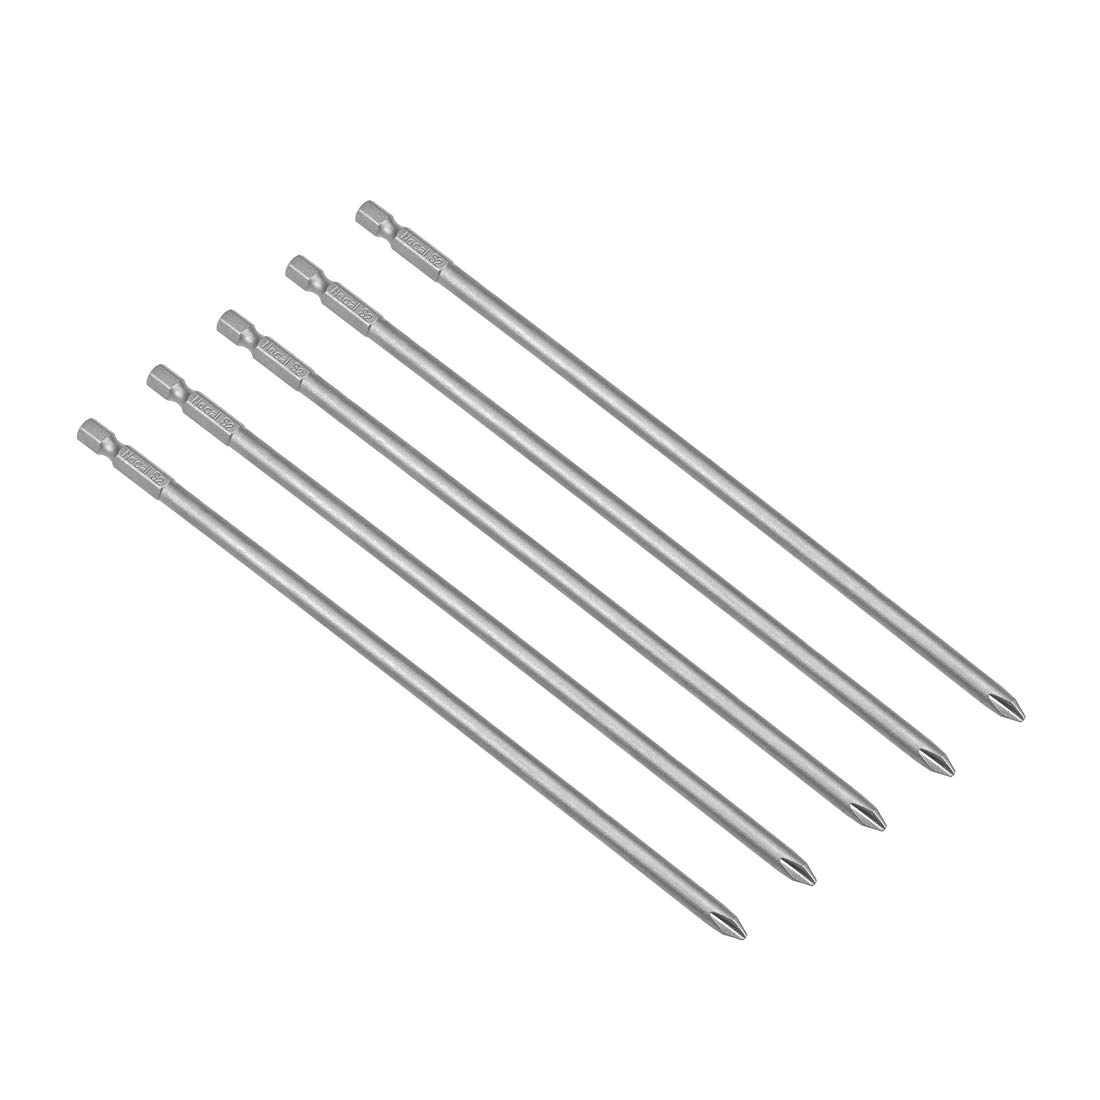 Uxcell a15062200ux0322 1//4 Inch Shank 3mm Hex Tip 65mm Long Magnetic Screwdriver Bits 10pcs Pack of 10